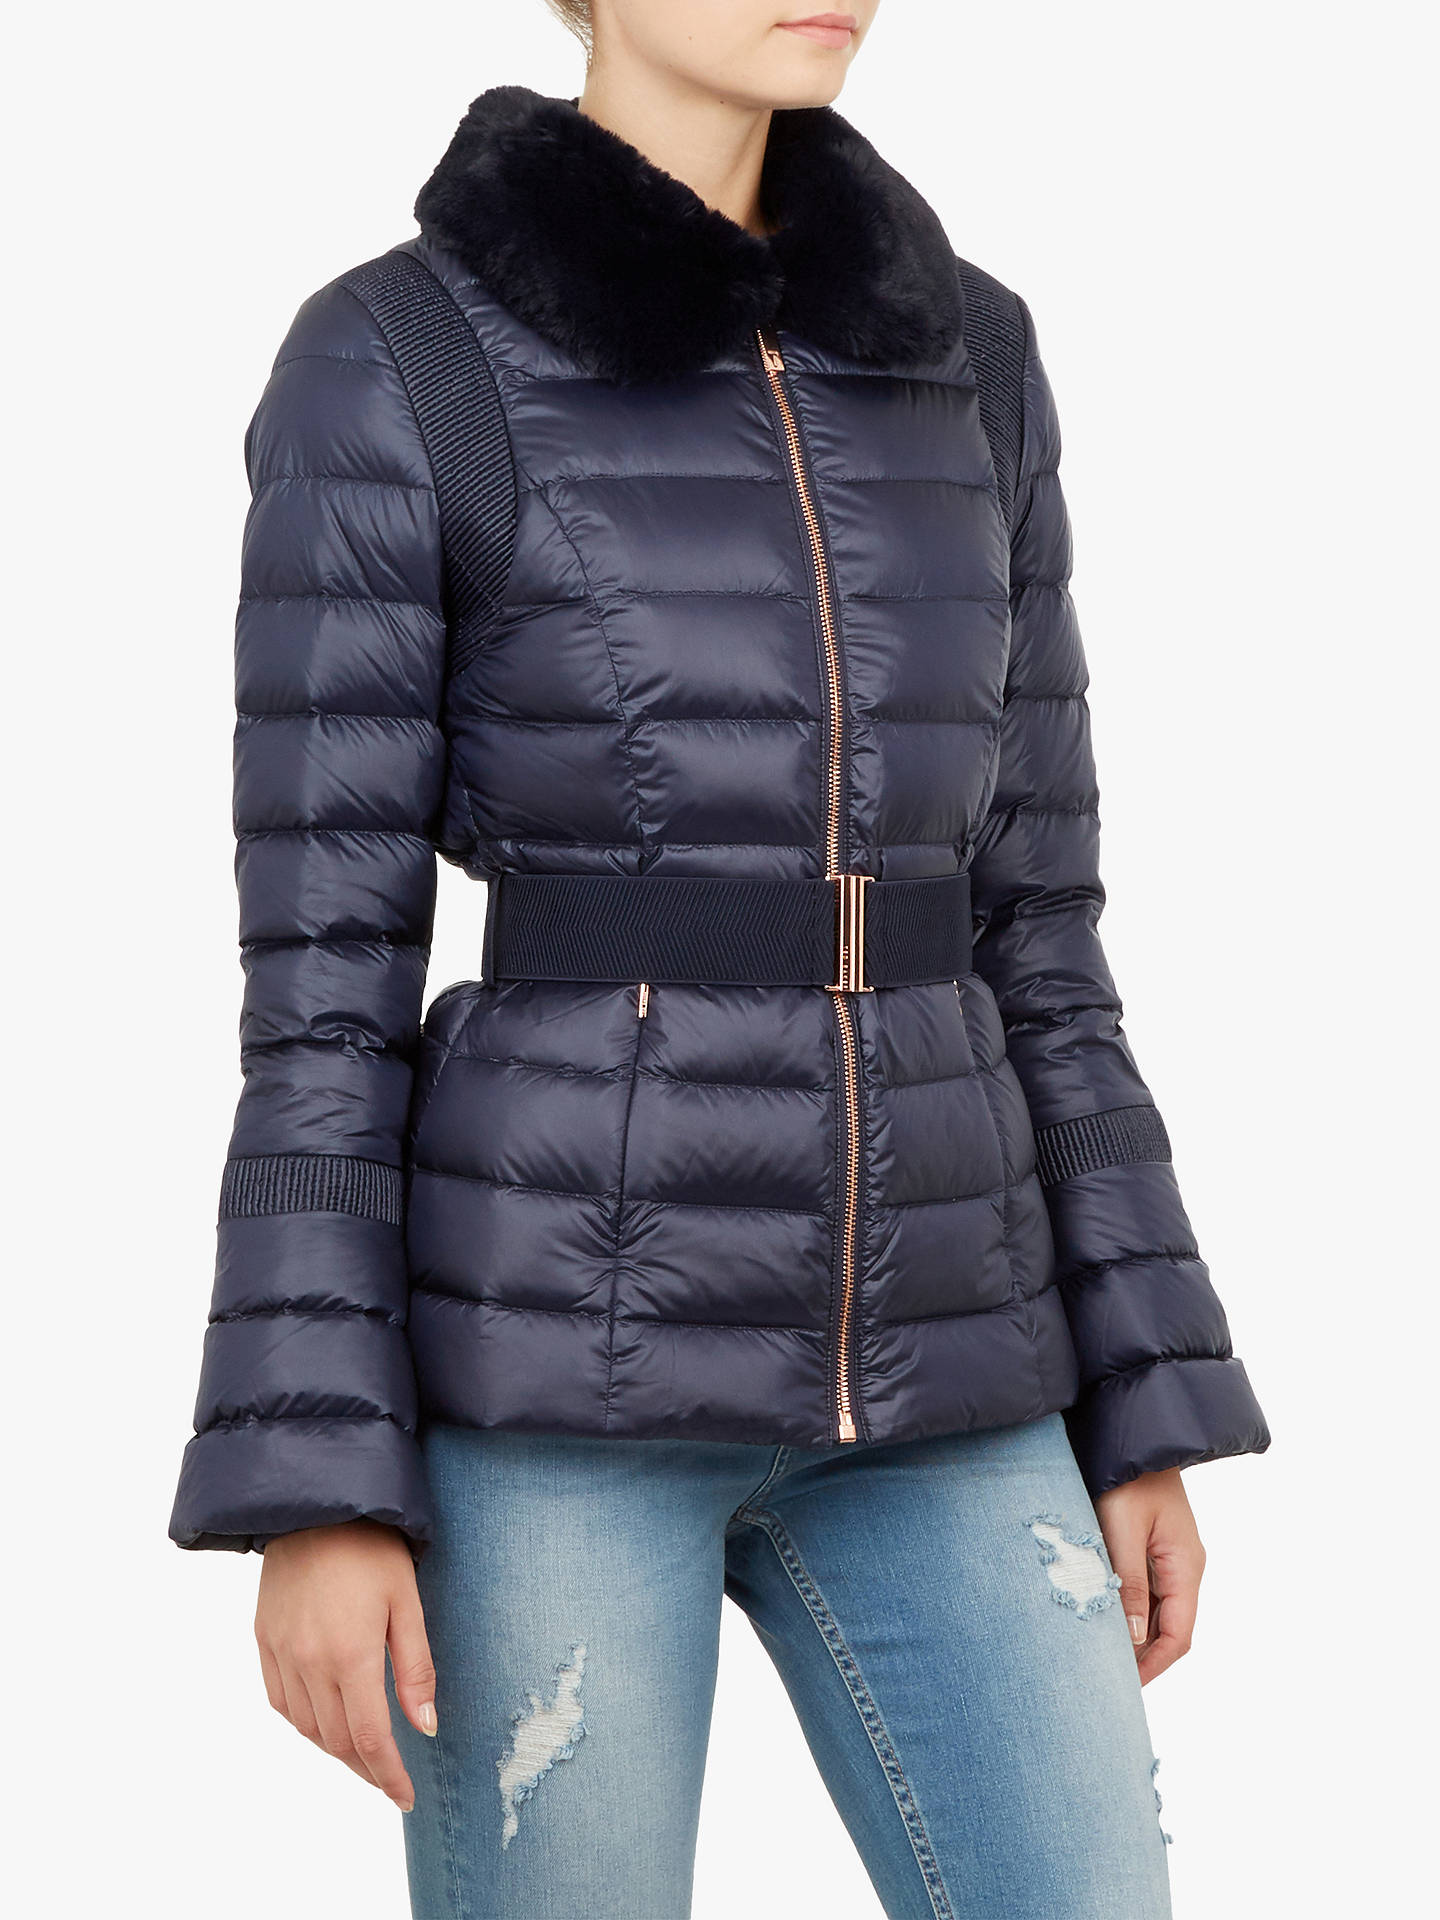 BuyTed Baker Yelta Quilted Down Jacket, Dark Blue, 2 Online at johnlewis.com